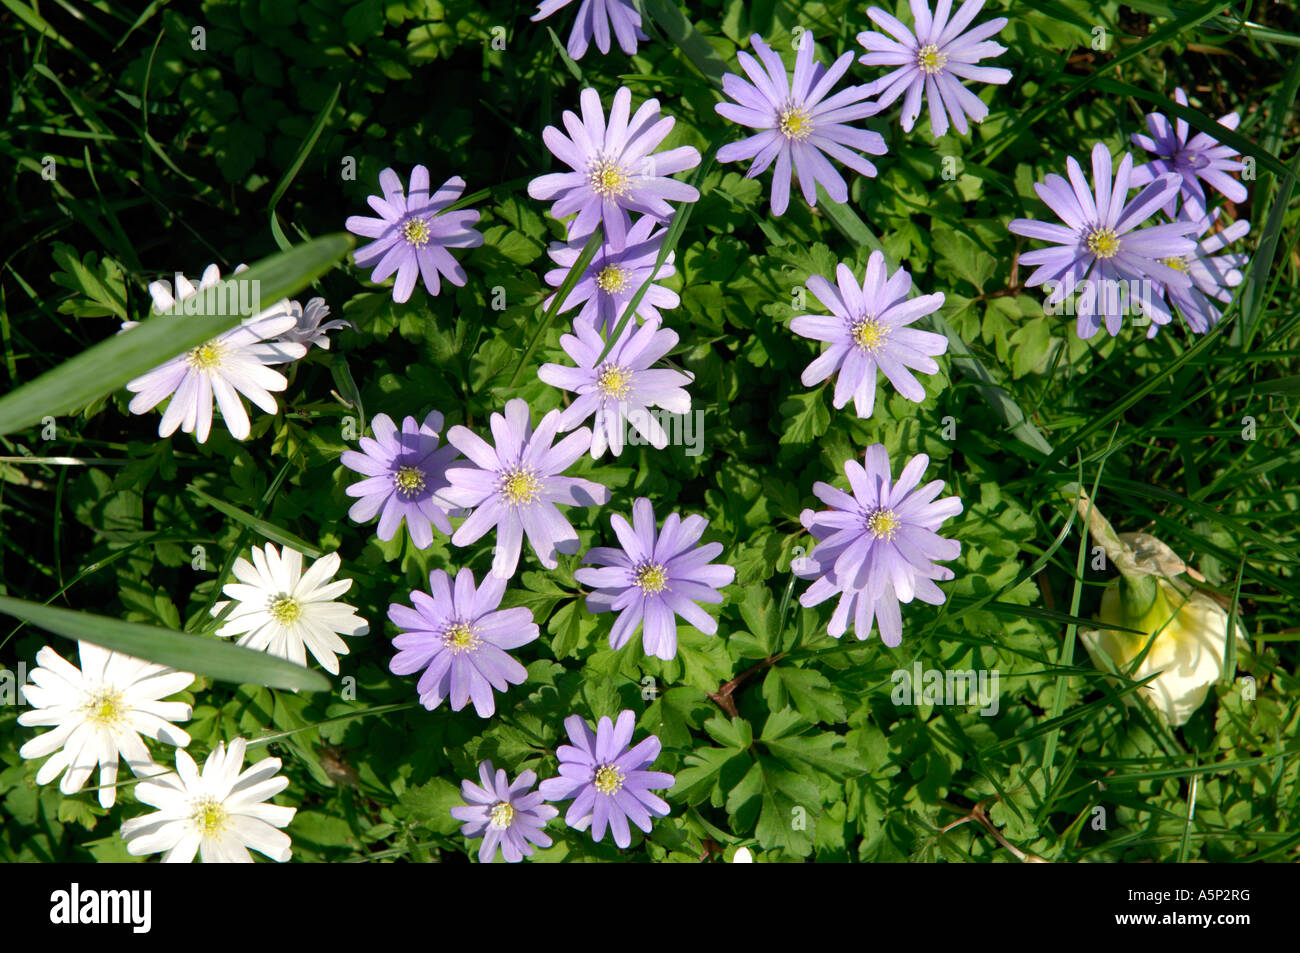 White Daisy Like Flowers With Yellow Centre Stock Photos White